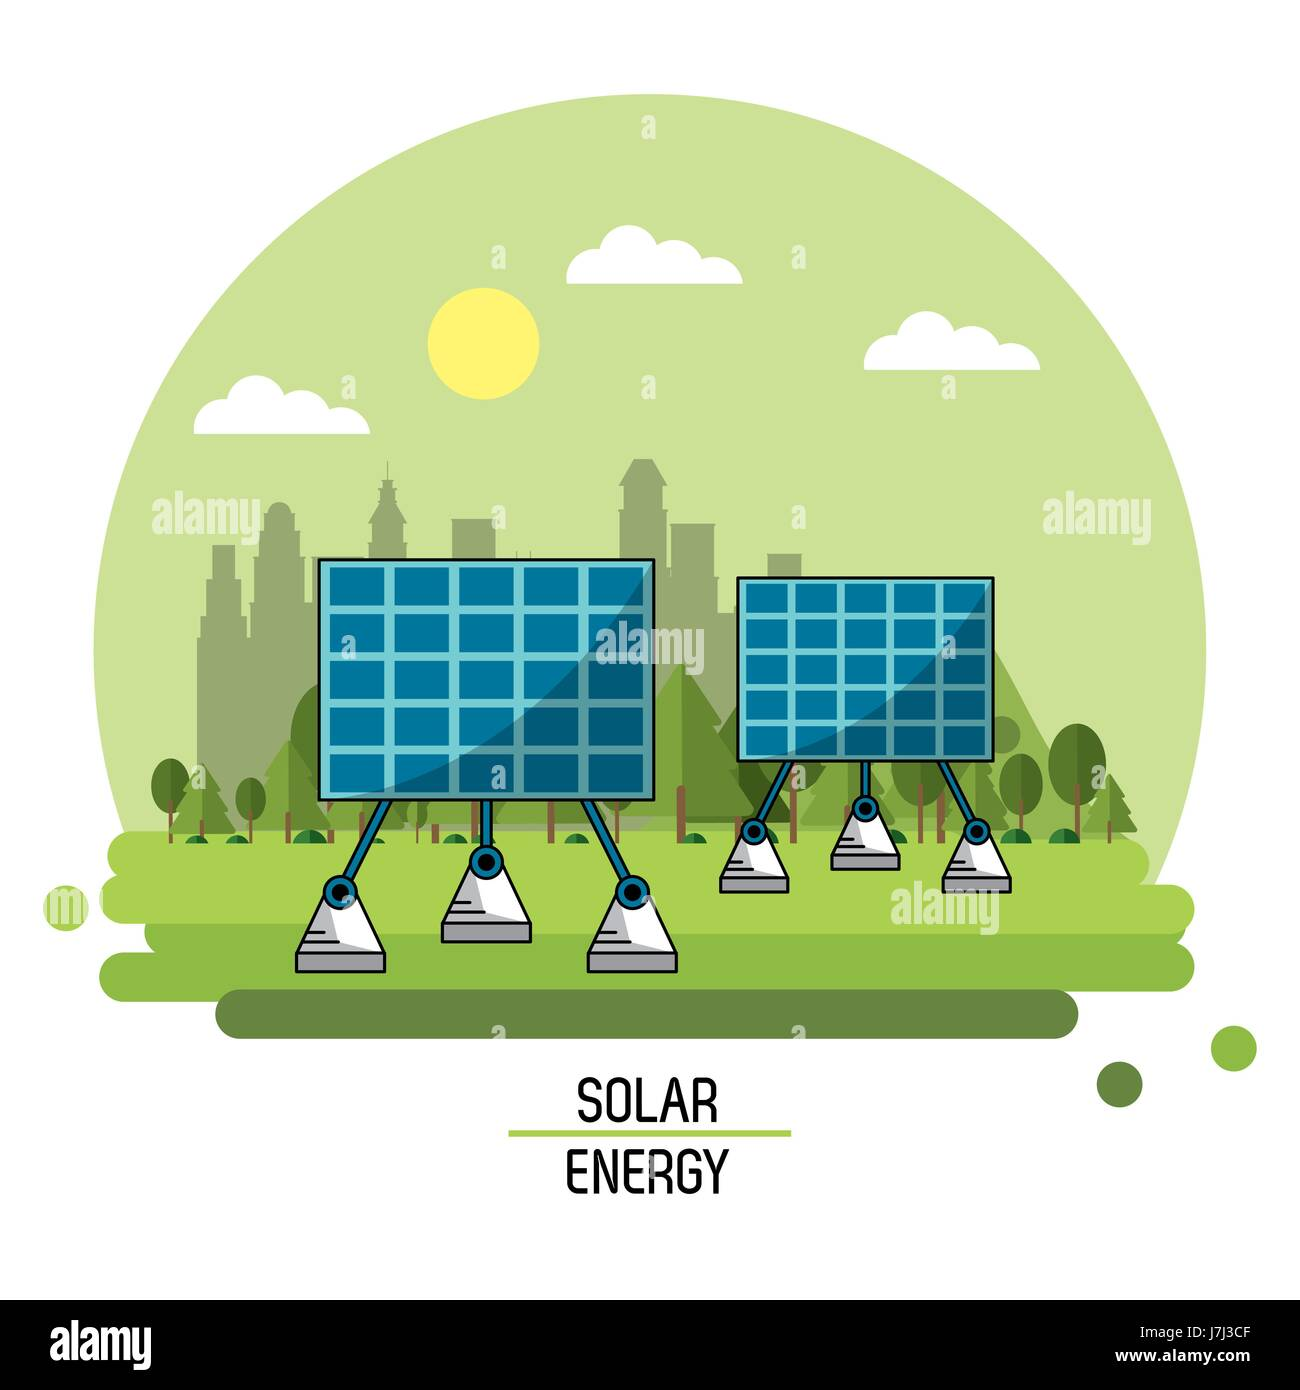 color landscape image solar energy panels - Stock Image